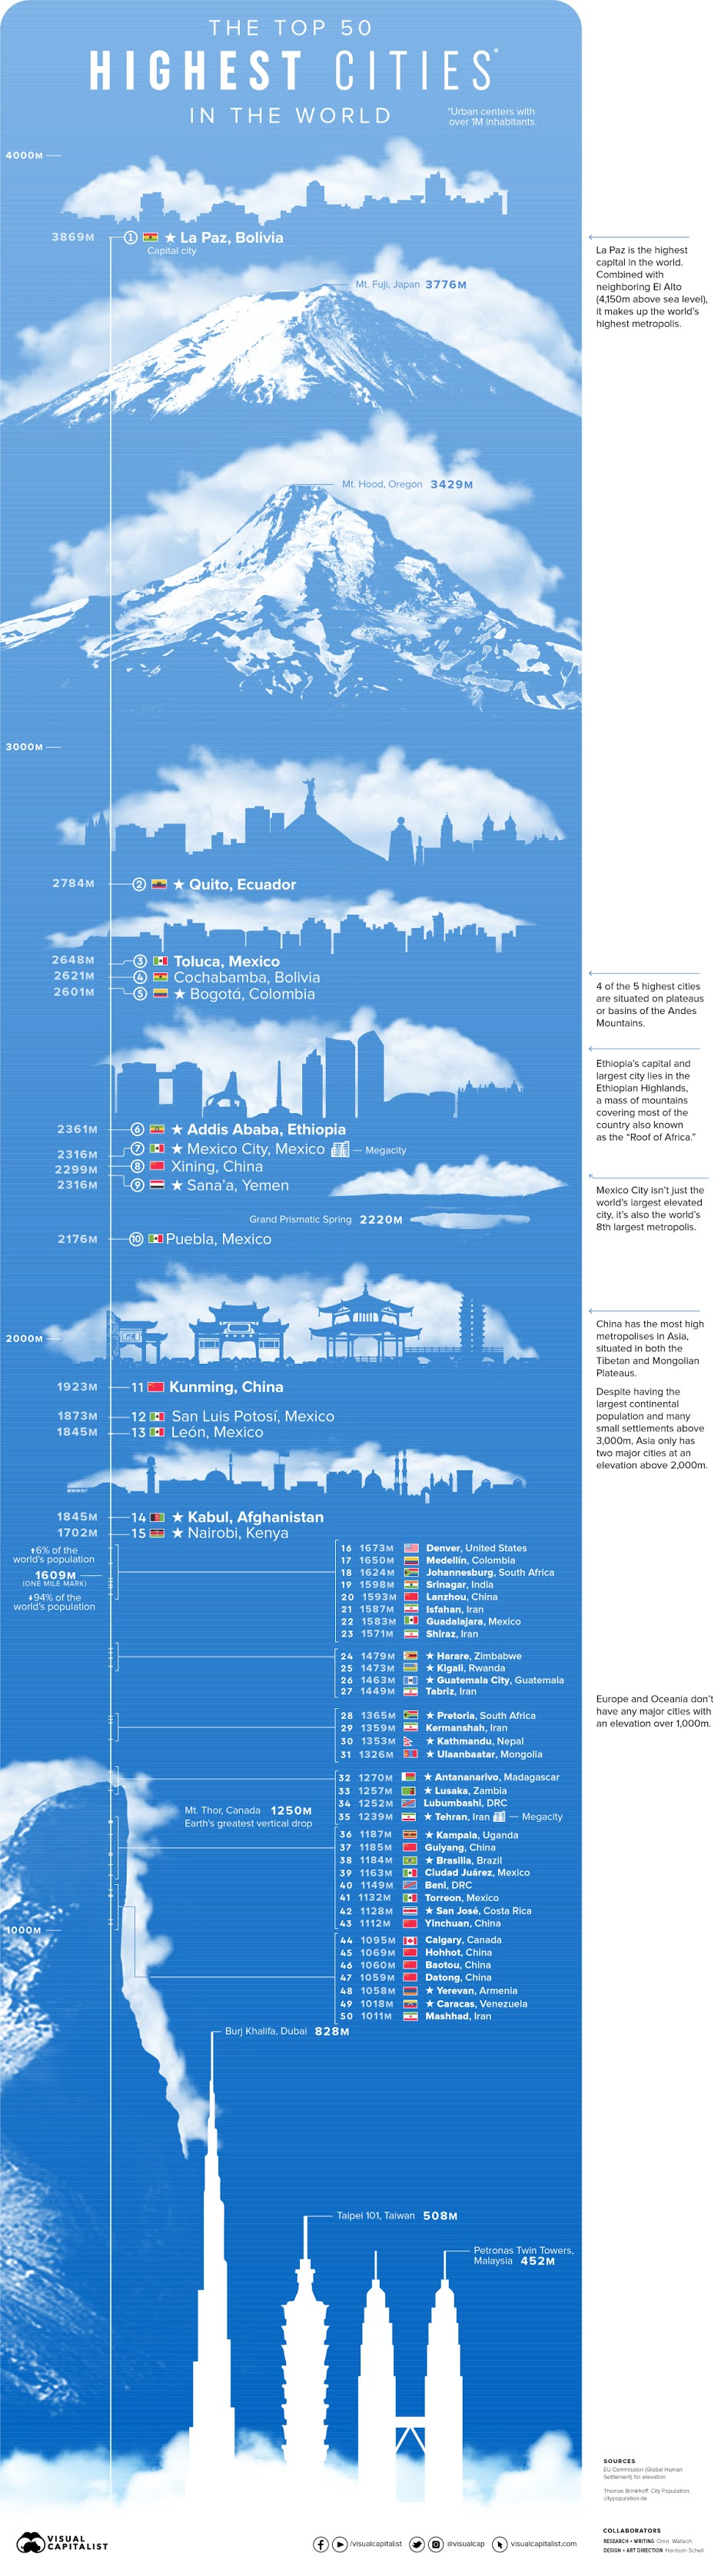 The Top 50 Highest Cities in the World #infographic #Highest Cities #World